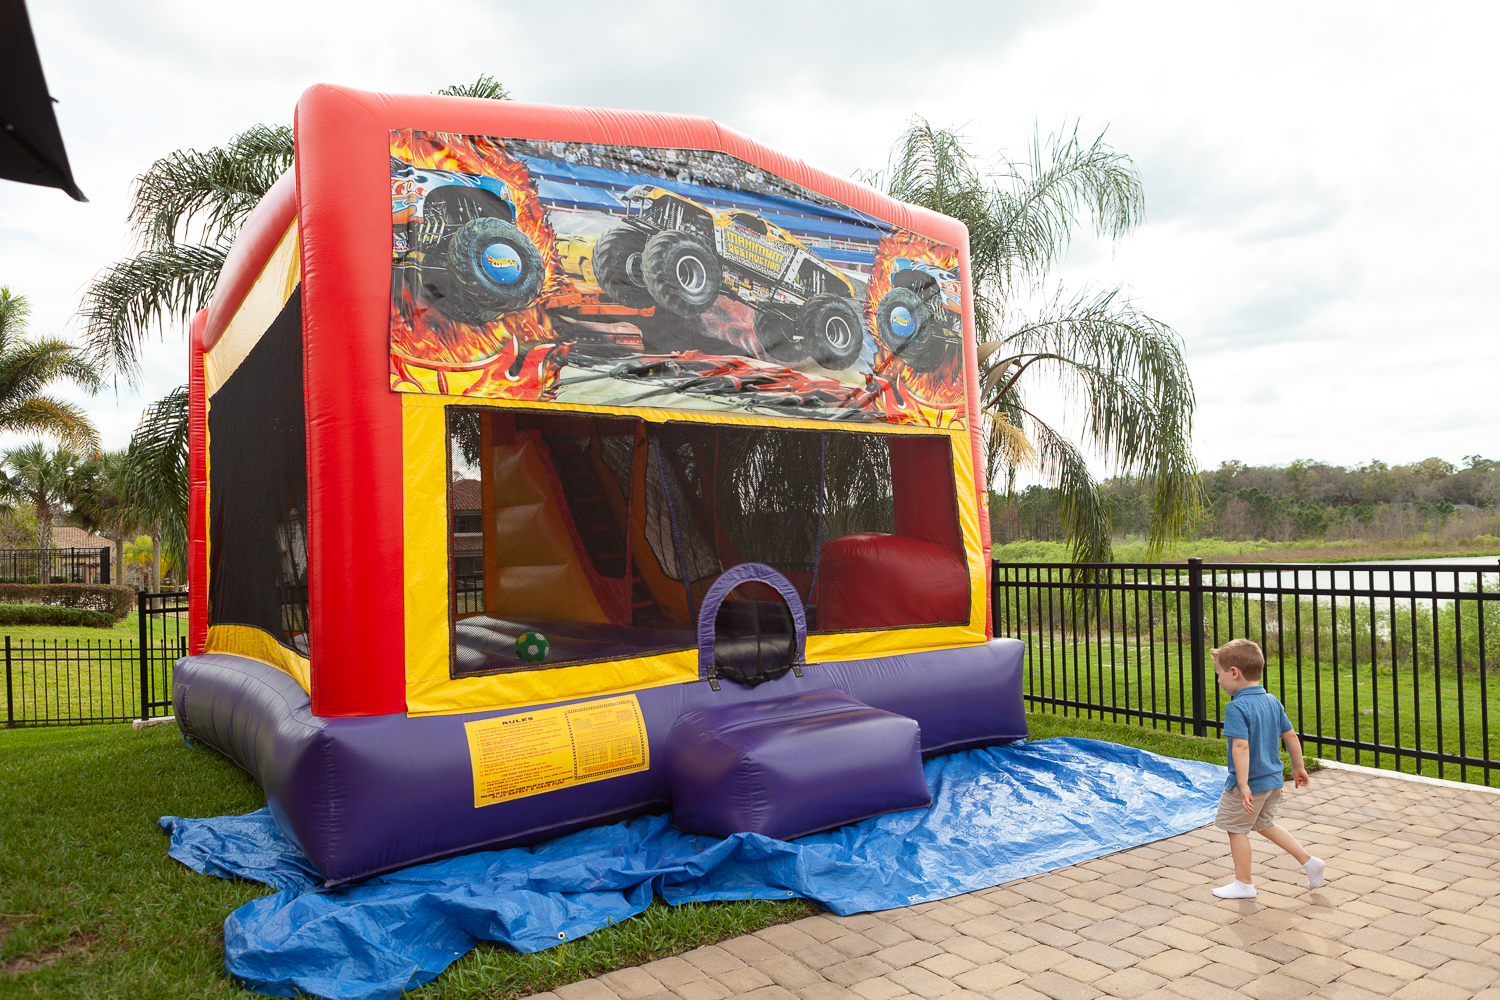 Hotwheels themed birthday party